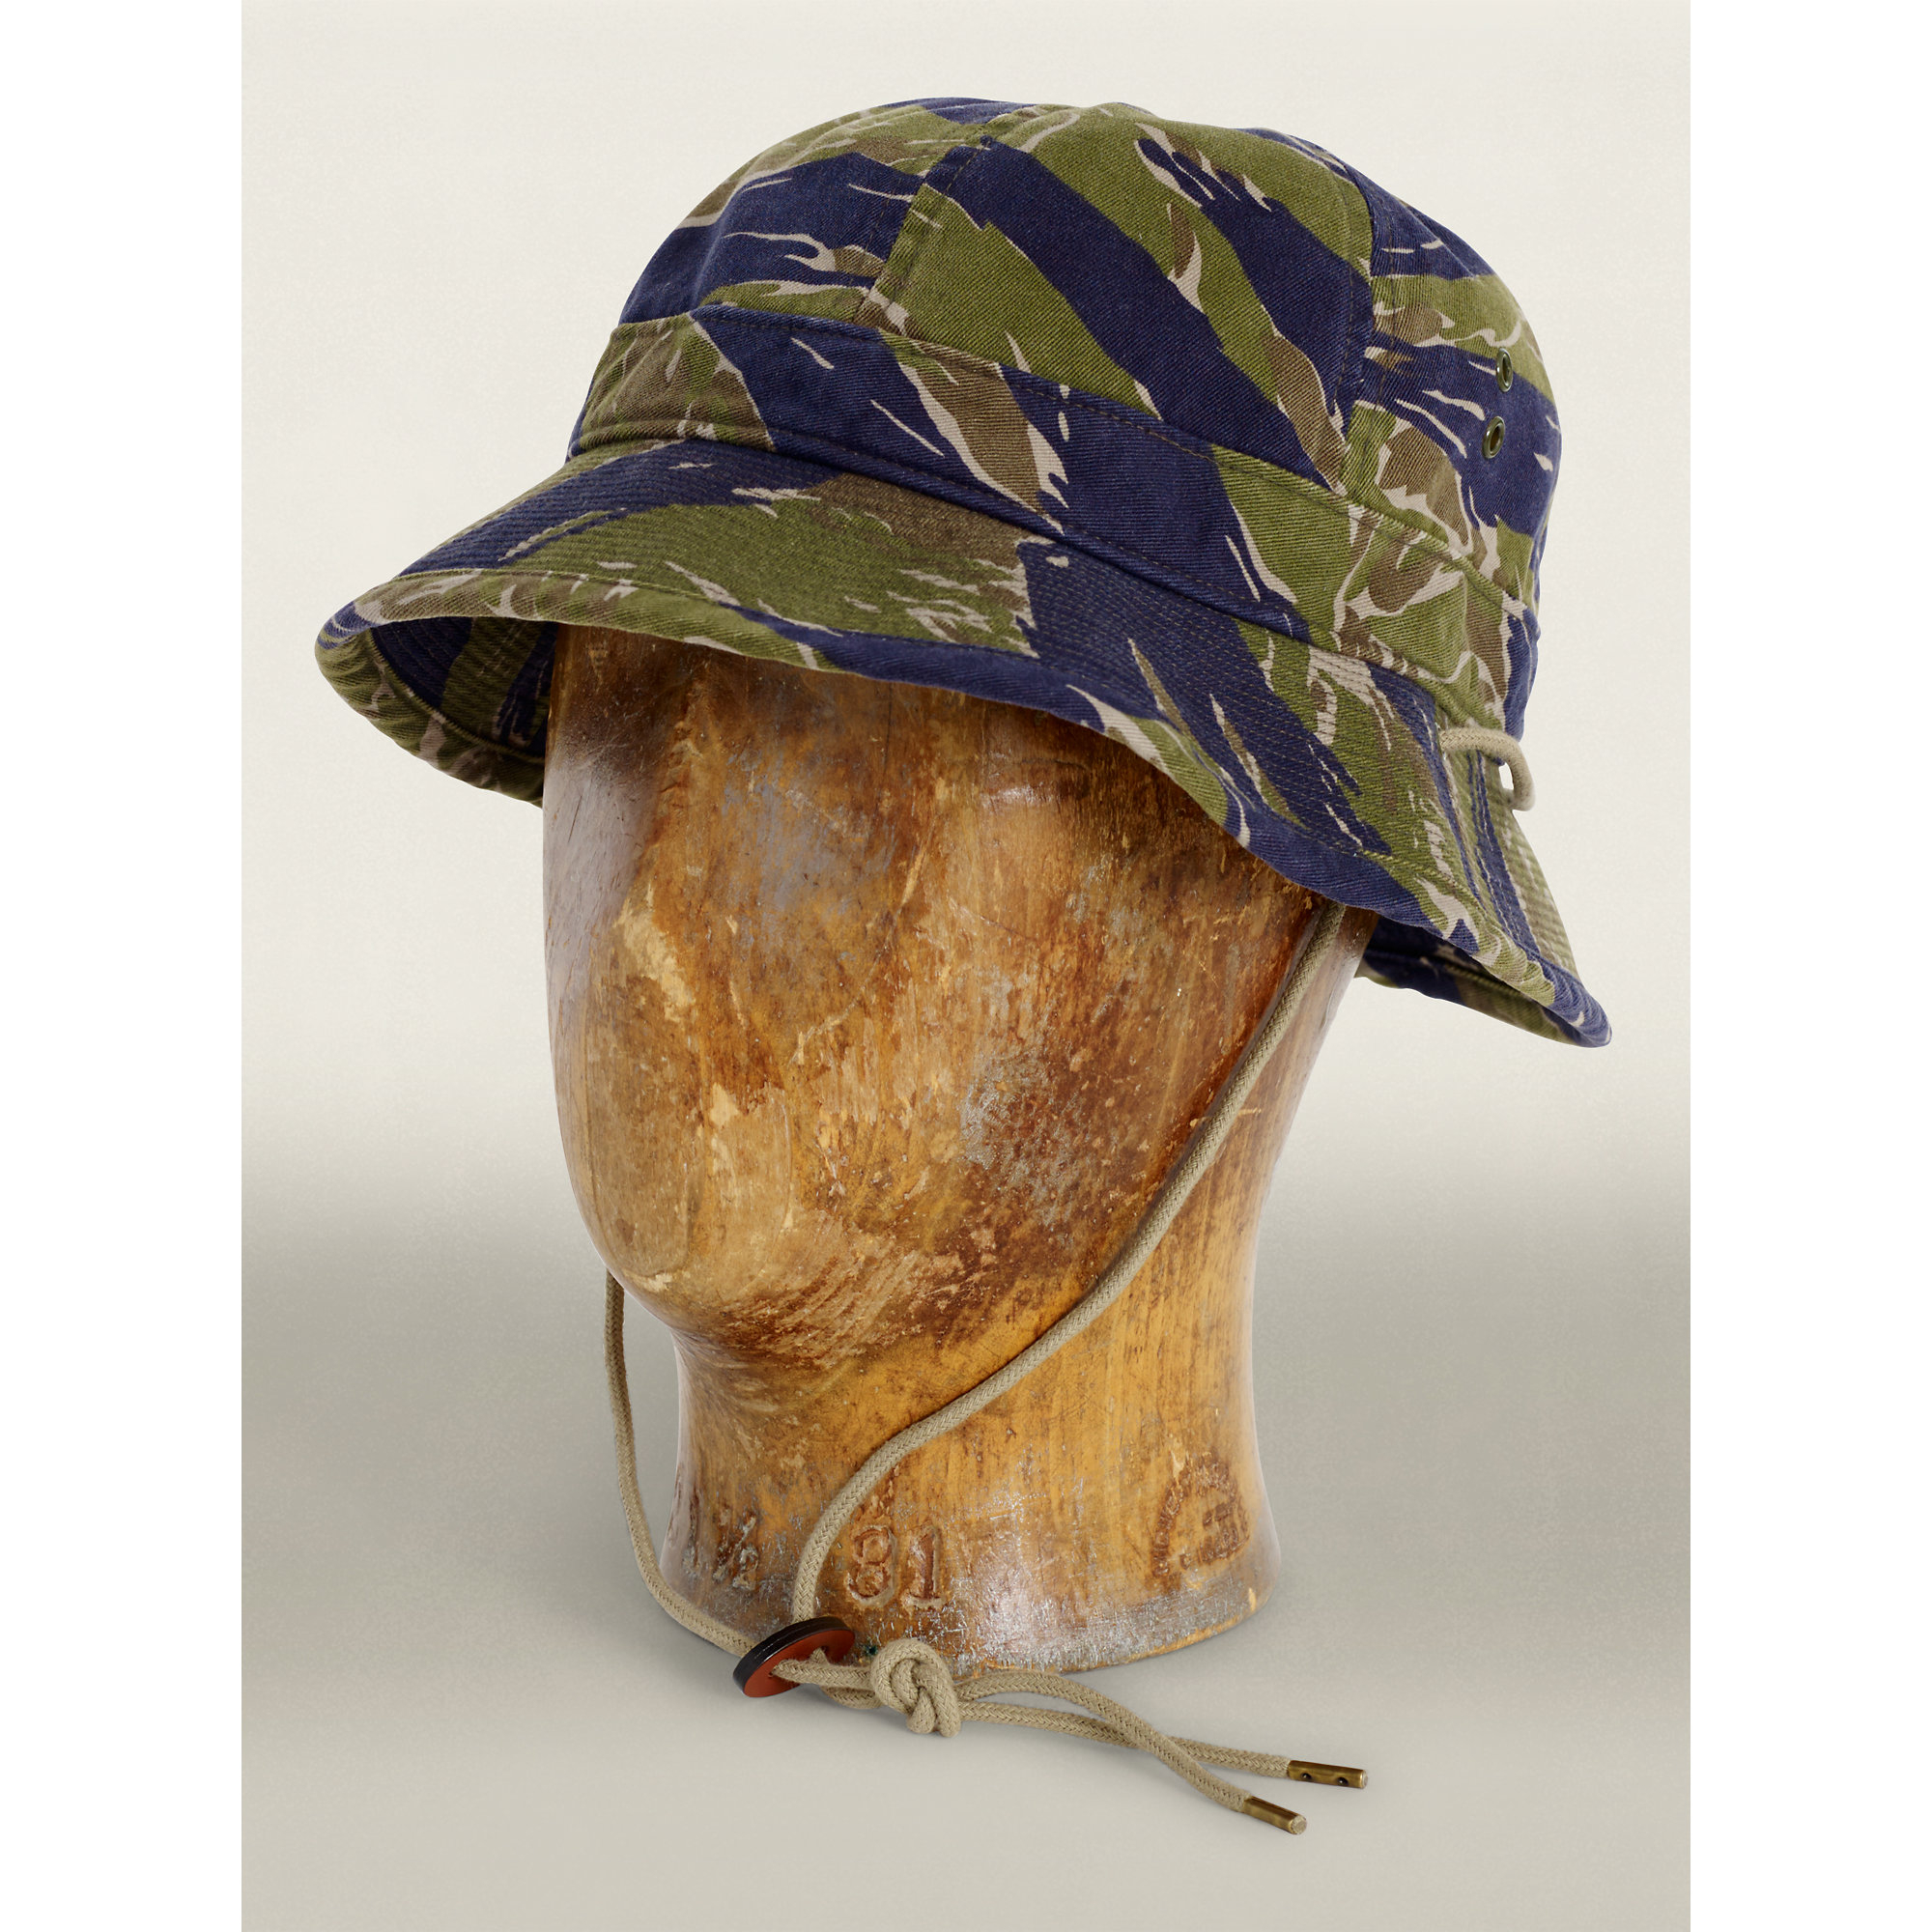 Lyst - RRL Tiger-striped Camo Bucket Hat in Green for Men eae9ddcfb17